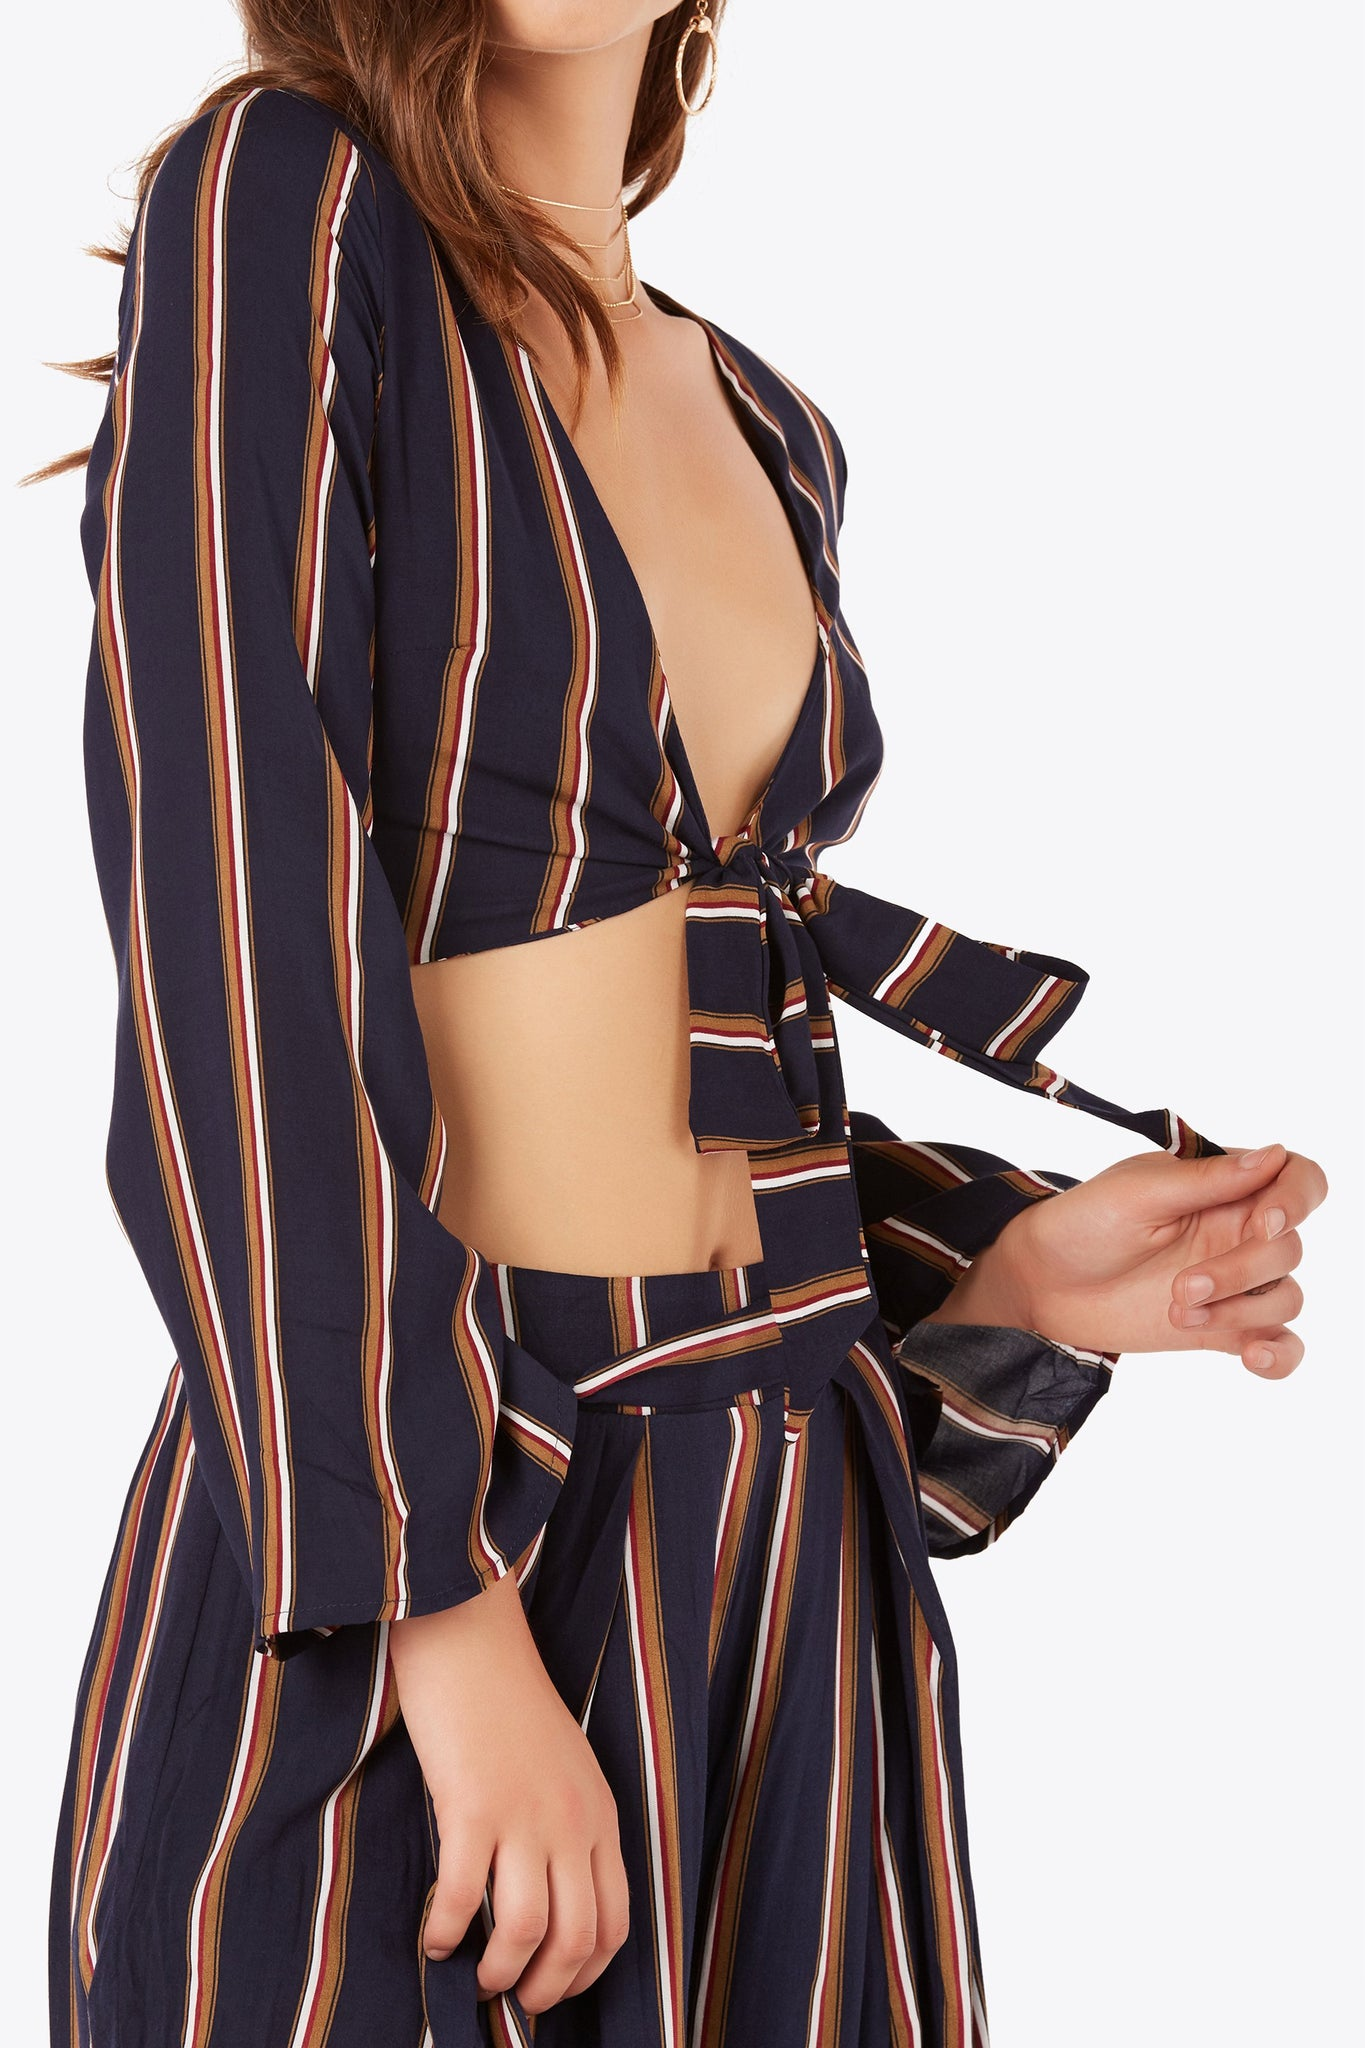 Long sleeev crop top with colorblock stripes printed throughout. Wide V-neckline with front tie closure.